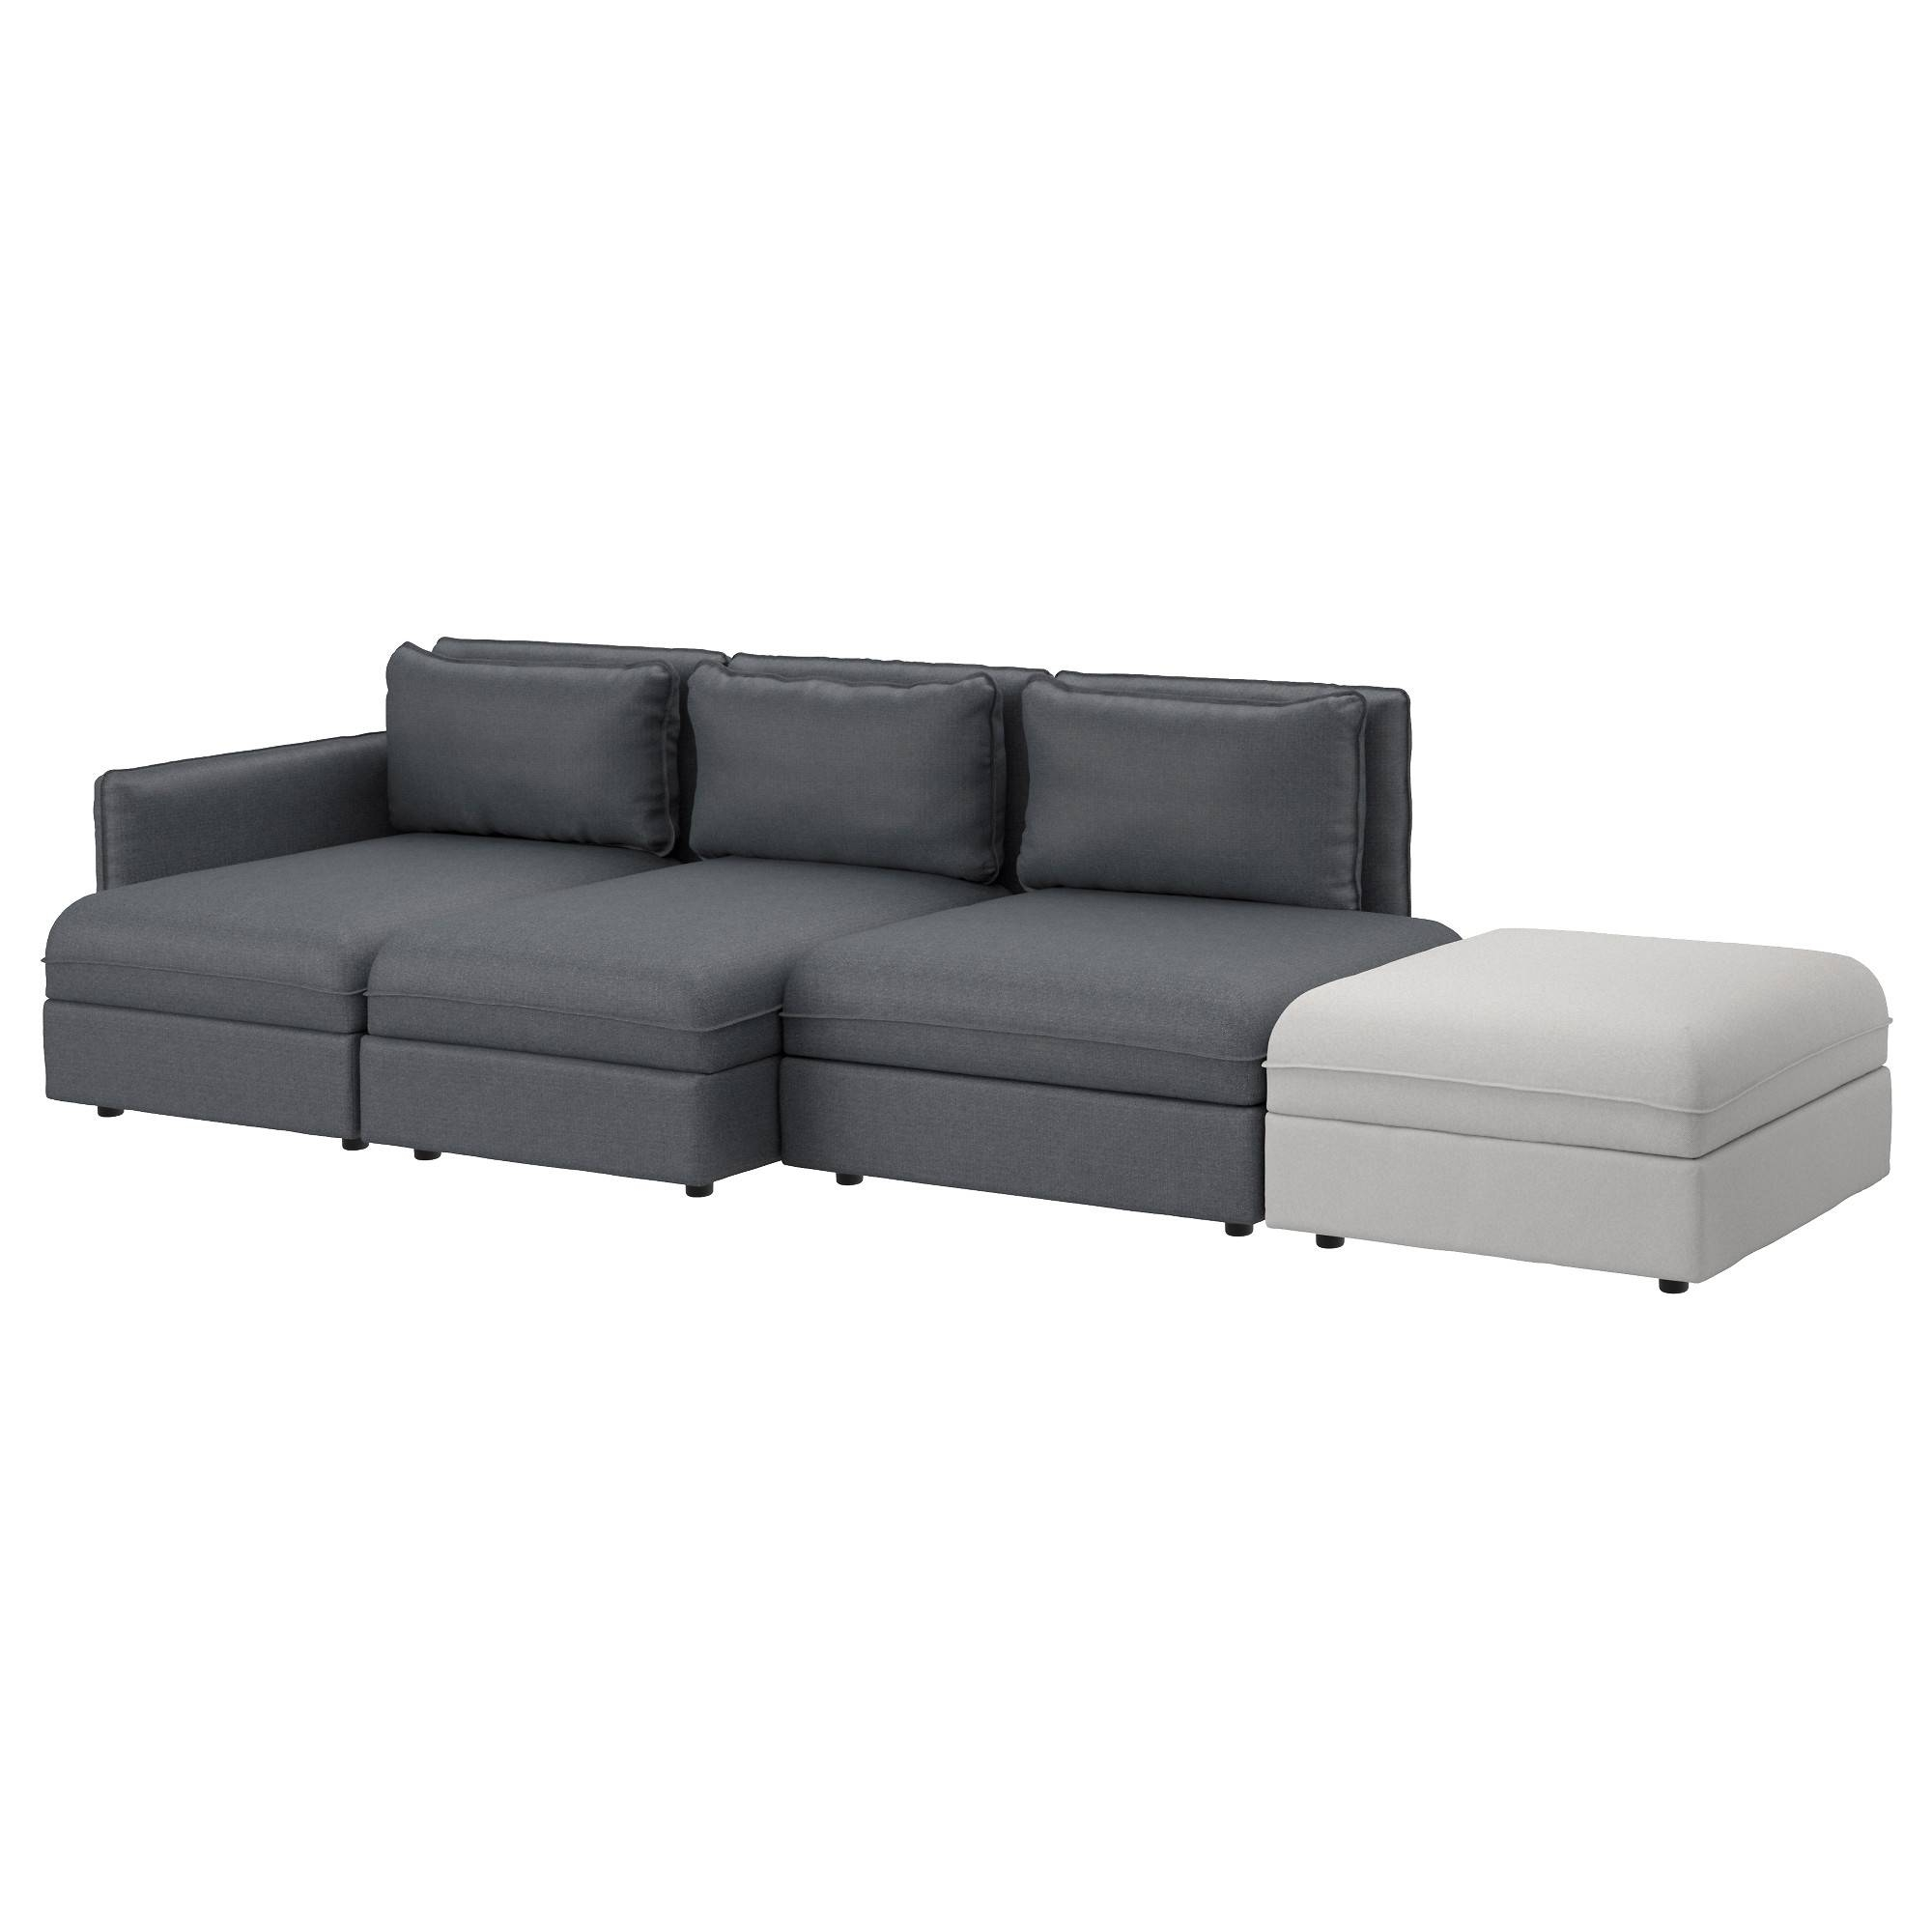 Sectional Sofas & Couches - Ikea within 45 Degree Sectional Sofa (Image 22 of 30)